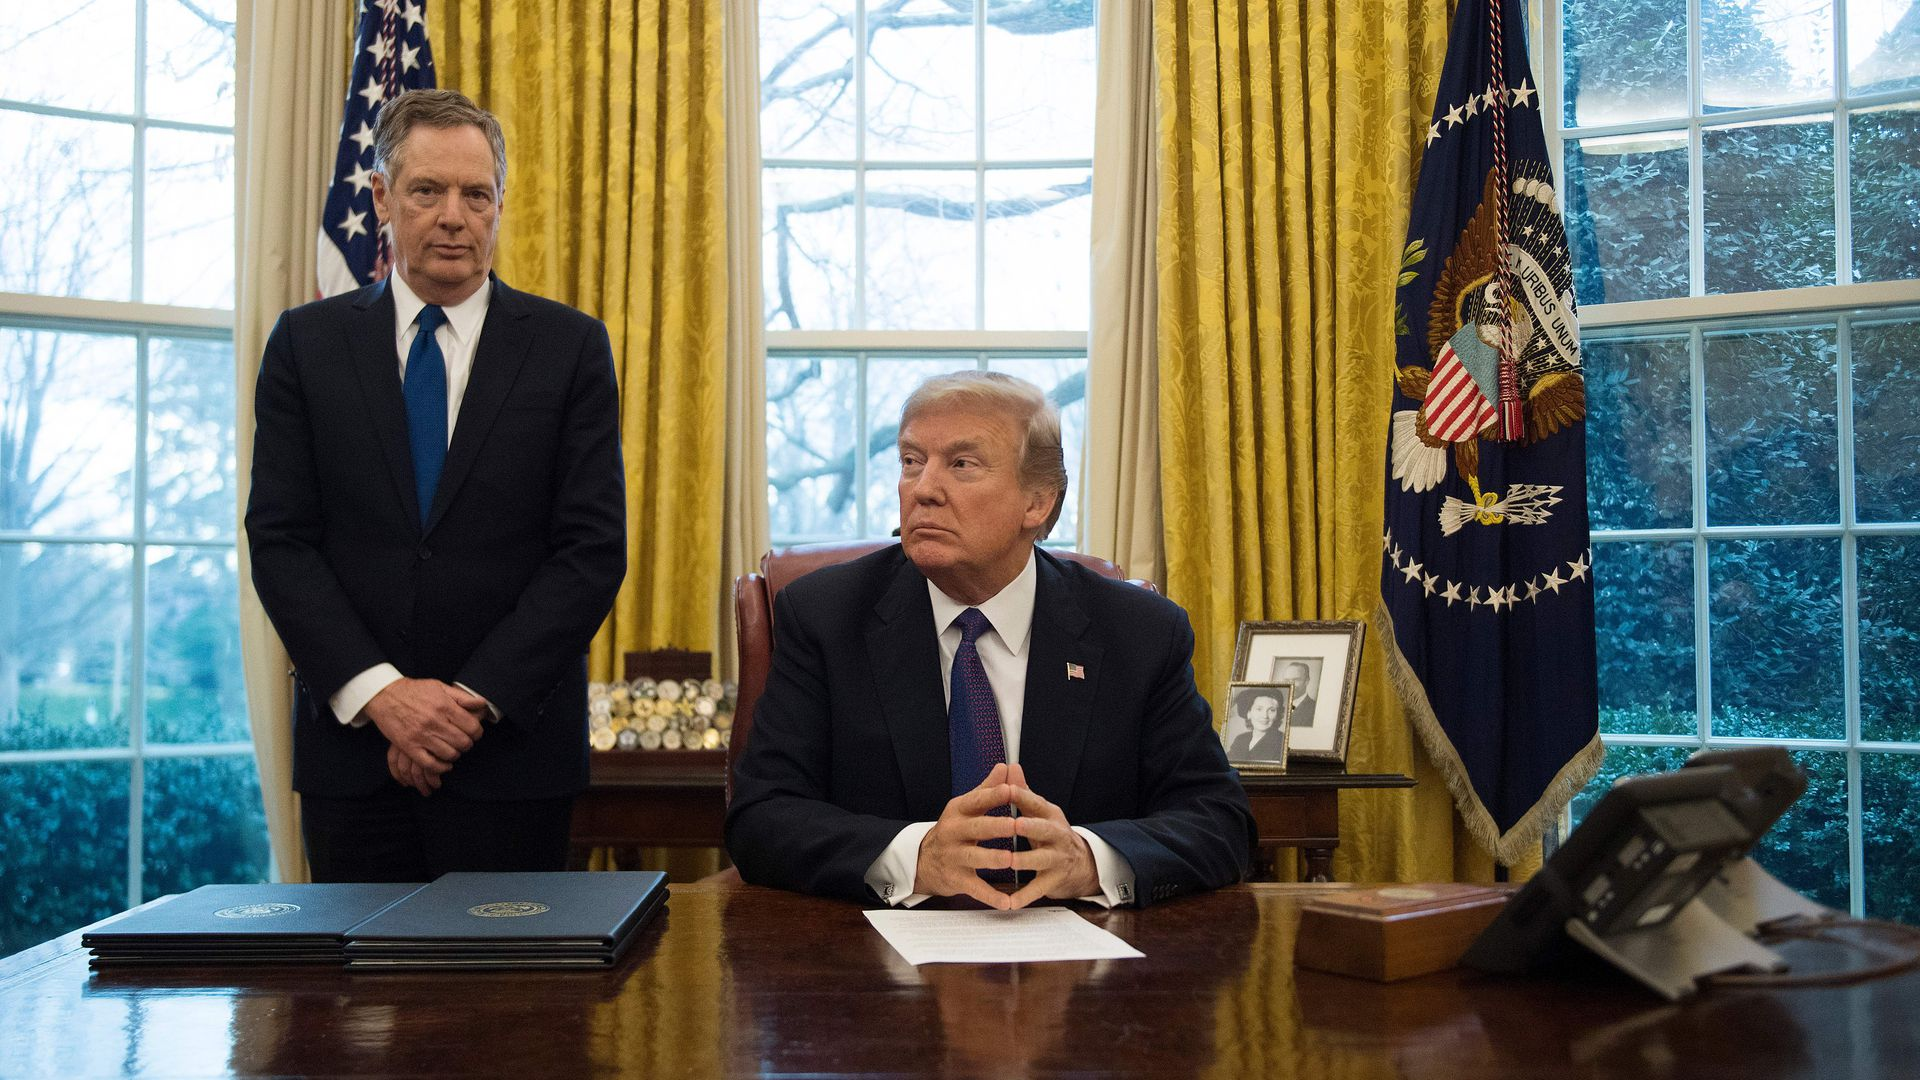 President Donald Trump sits with United States Trade Representative Robert Lighthizer in the Oval Office of the White House in Washington, DC, on January 23, 2018.